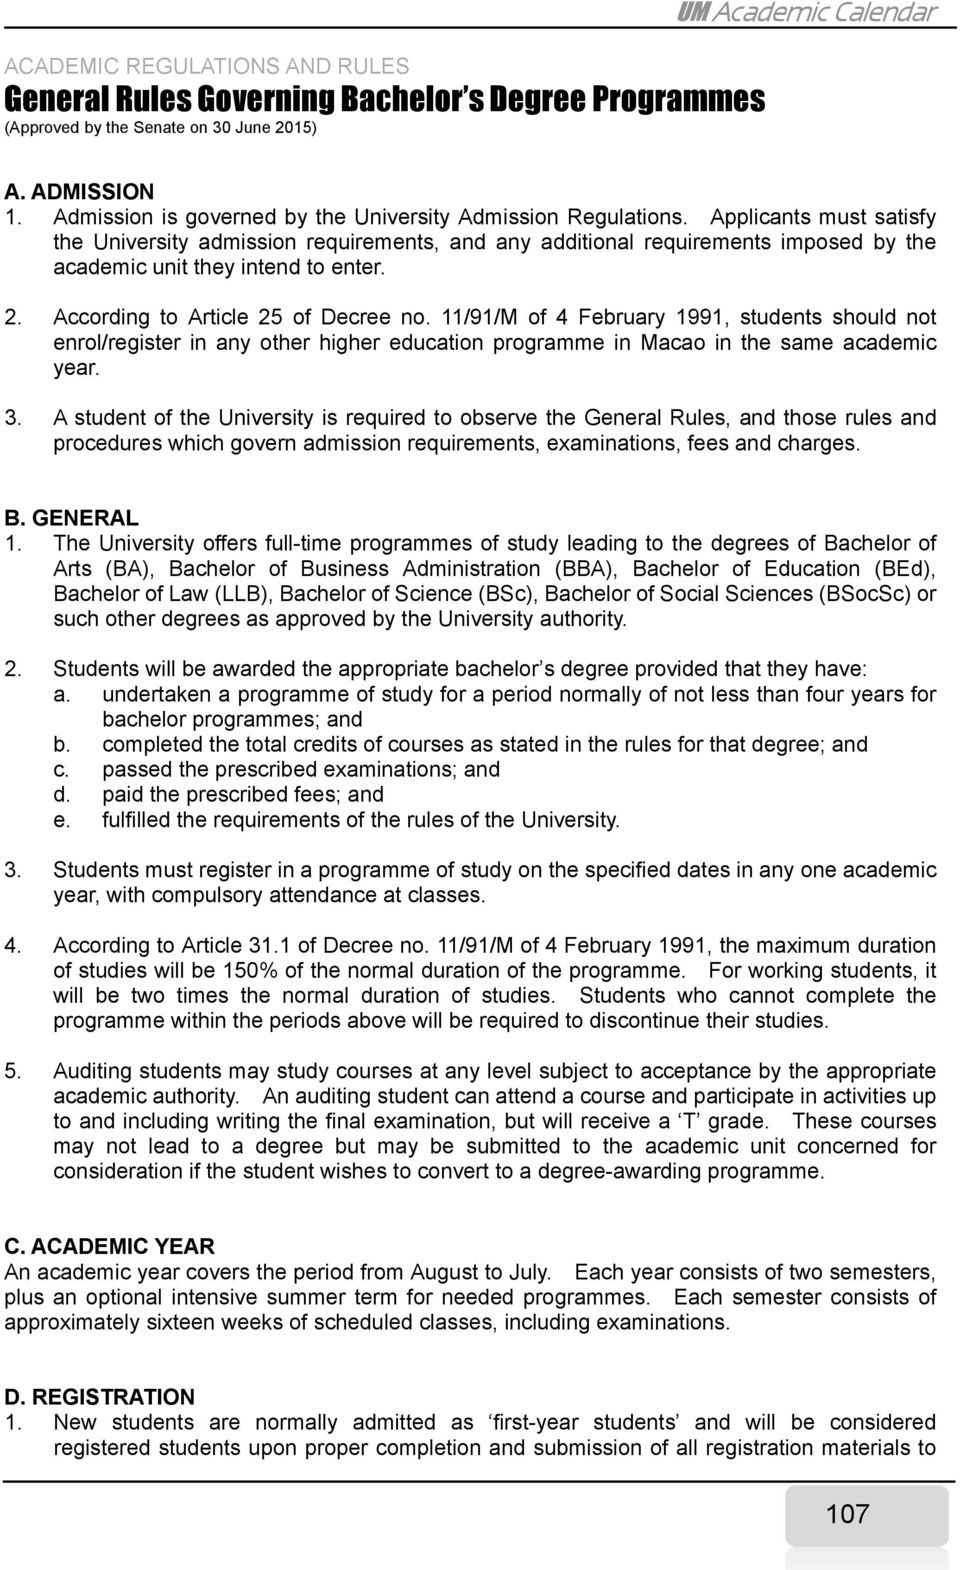 Applicants must satisfy the University admission requirements, and any additional requirements imposed by the academic unit they intend to enter. 2. According to Article 25 of Decree no.